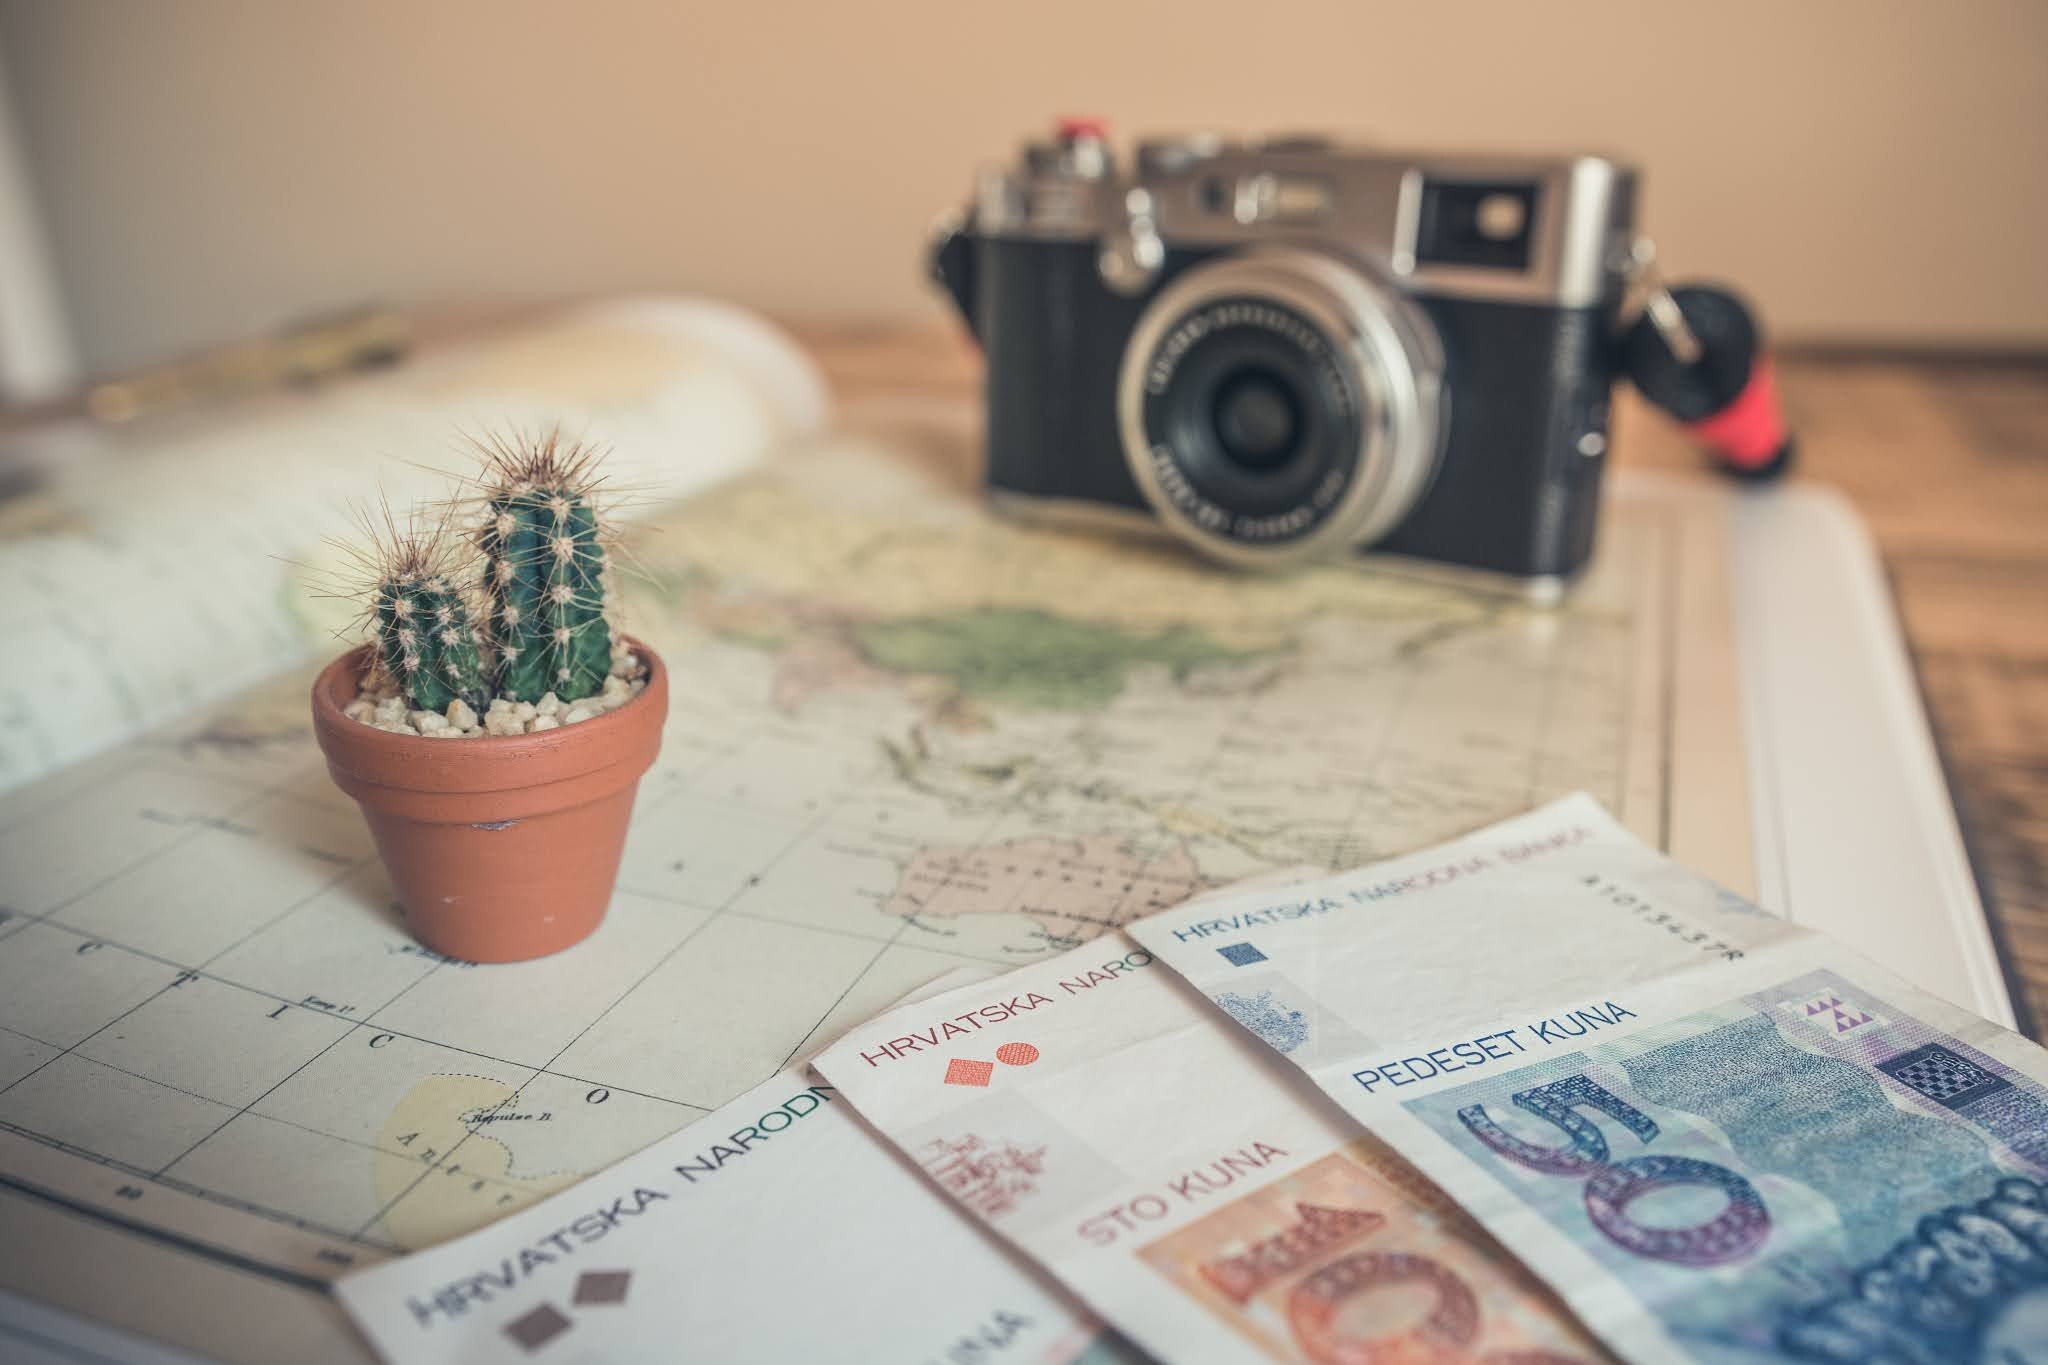 www.syazaraihanah.com : How To Travel Without Worries